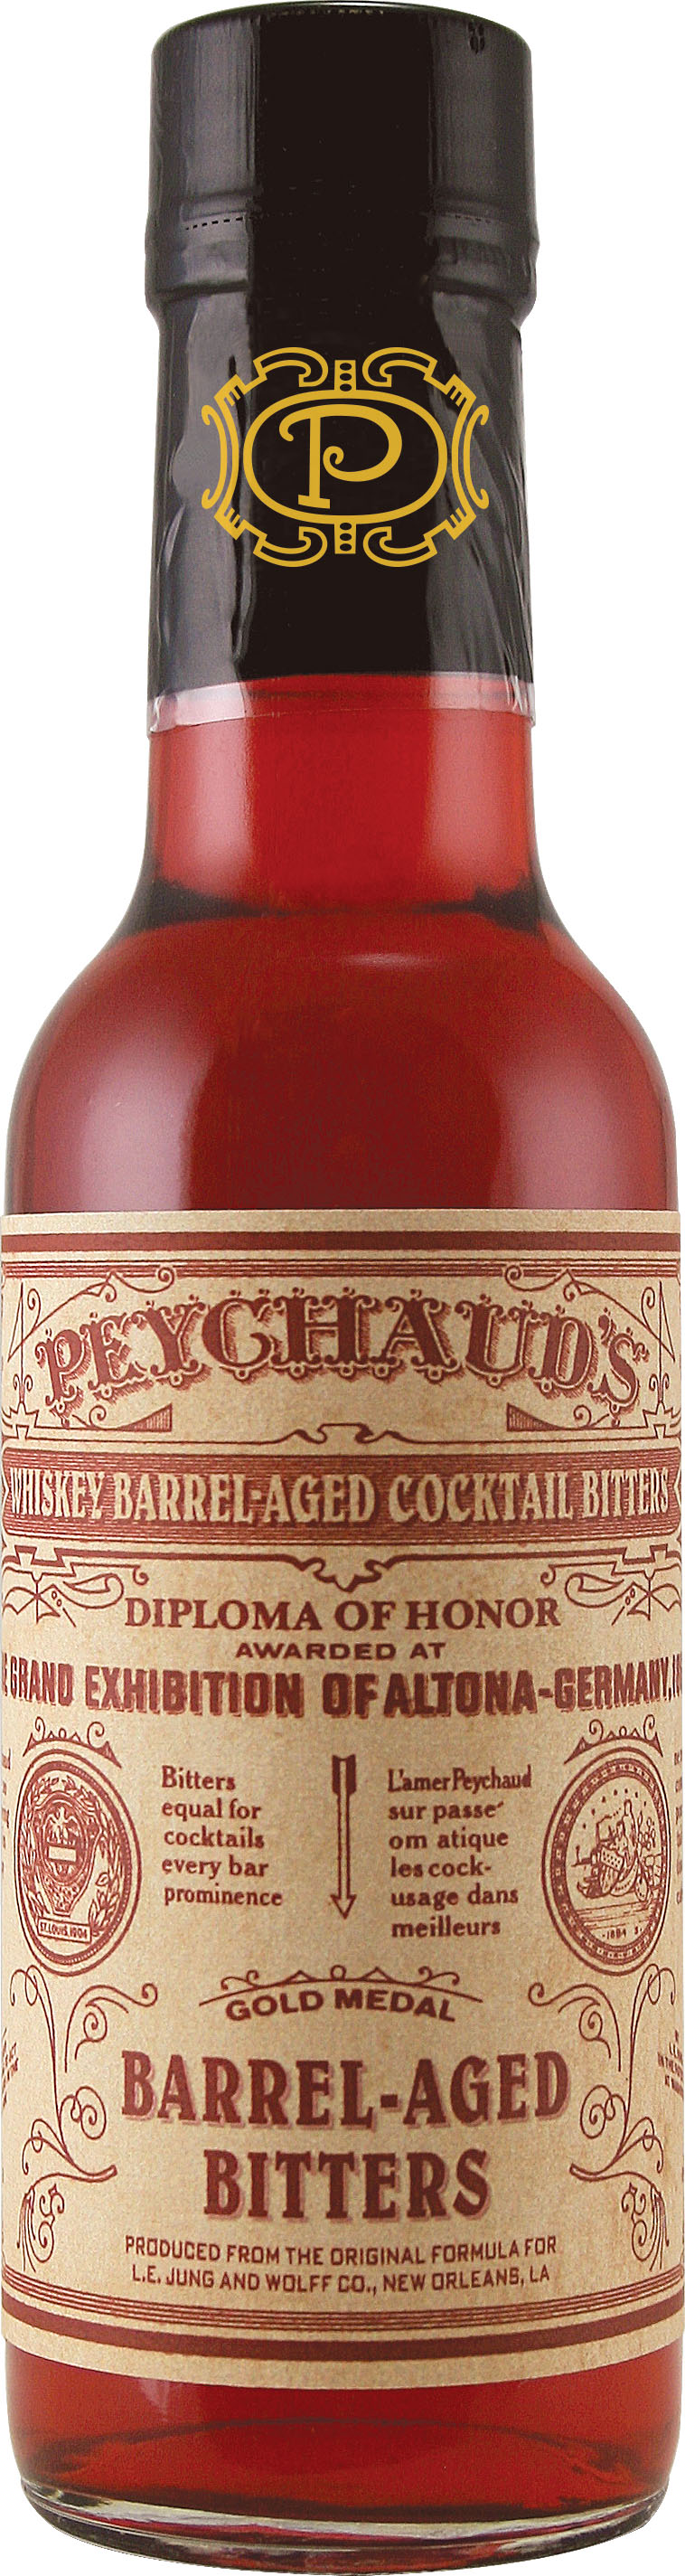 Peychaud's Whiskey Barrel-Aged Cocktail Bitters